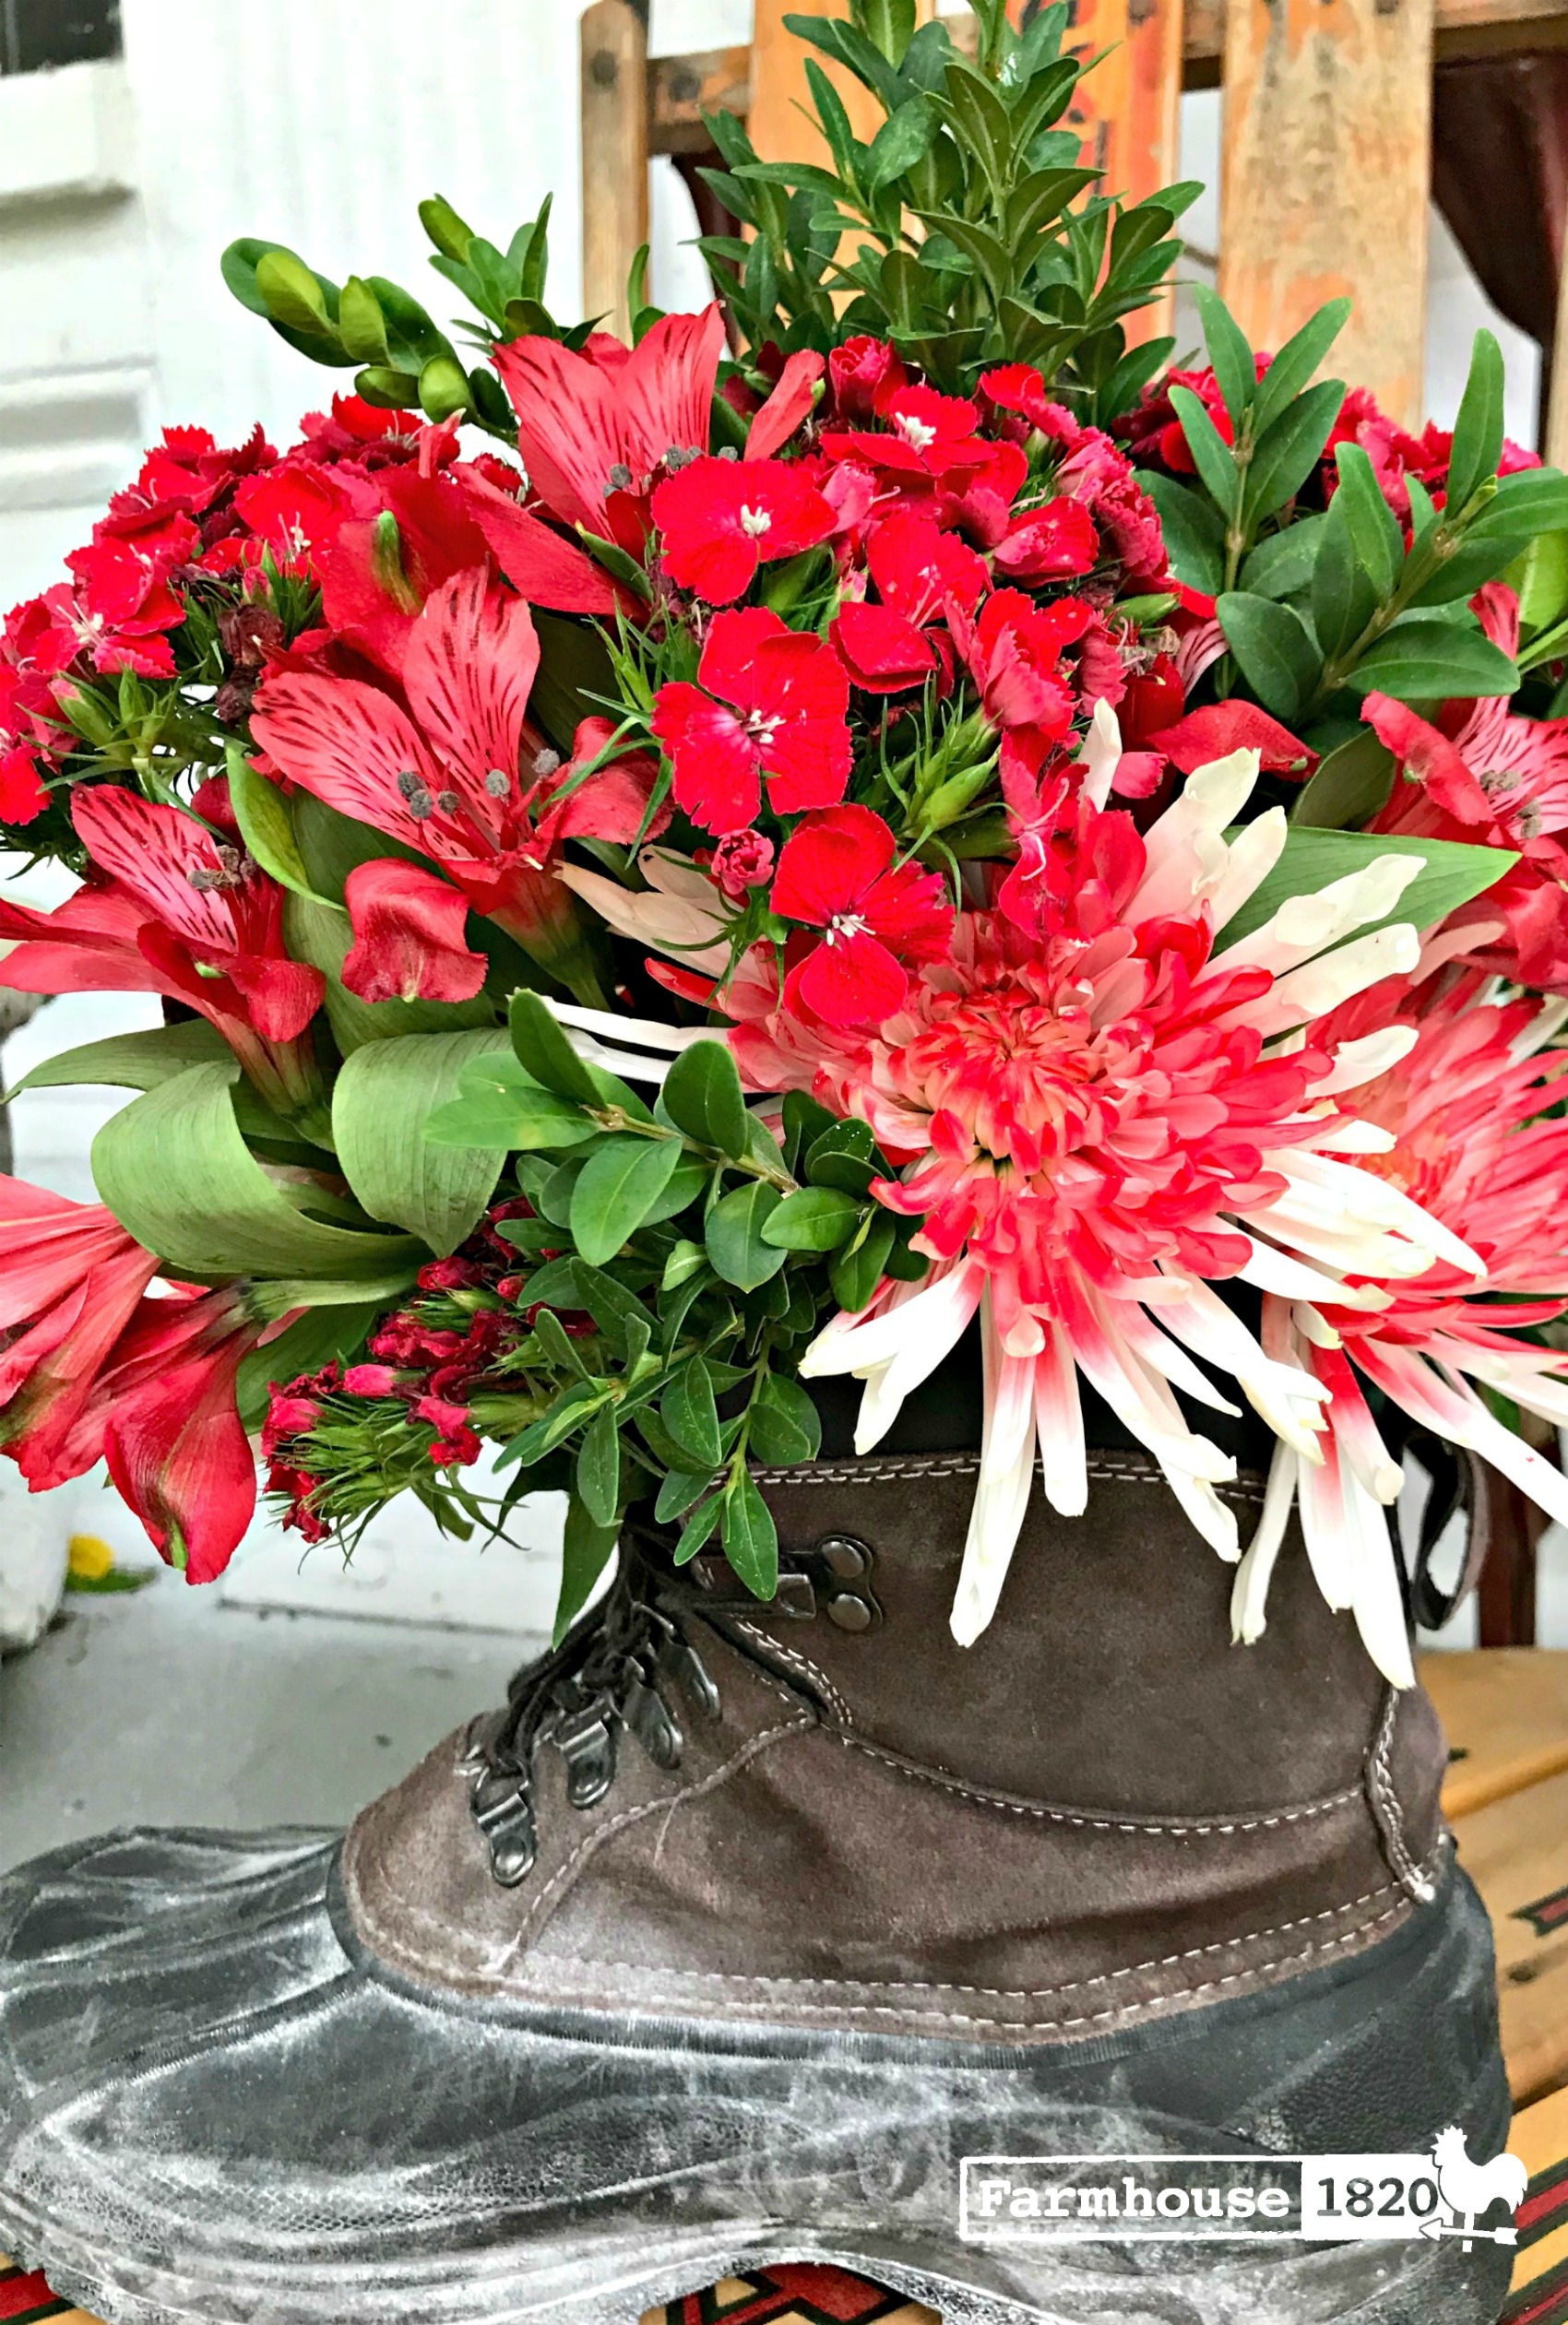 Who Knew An Old Boot Can Be A Stunning Vase!